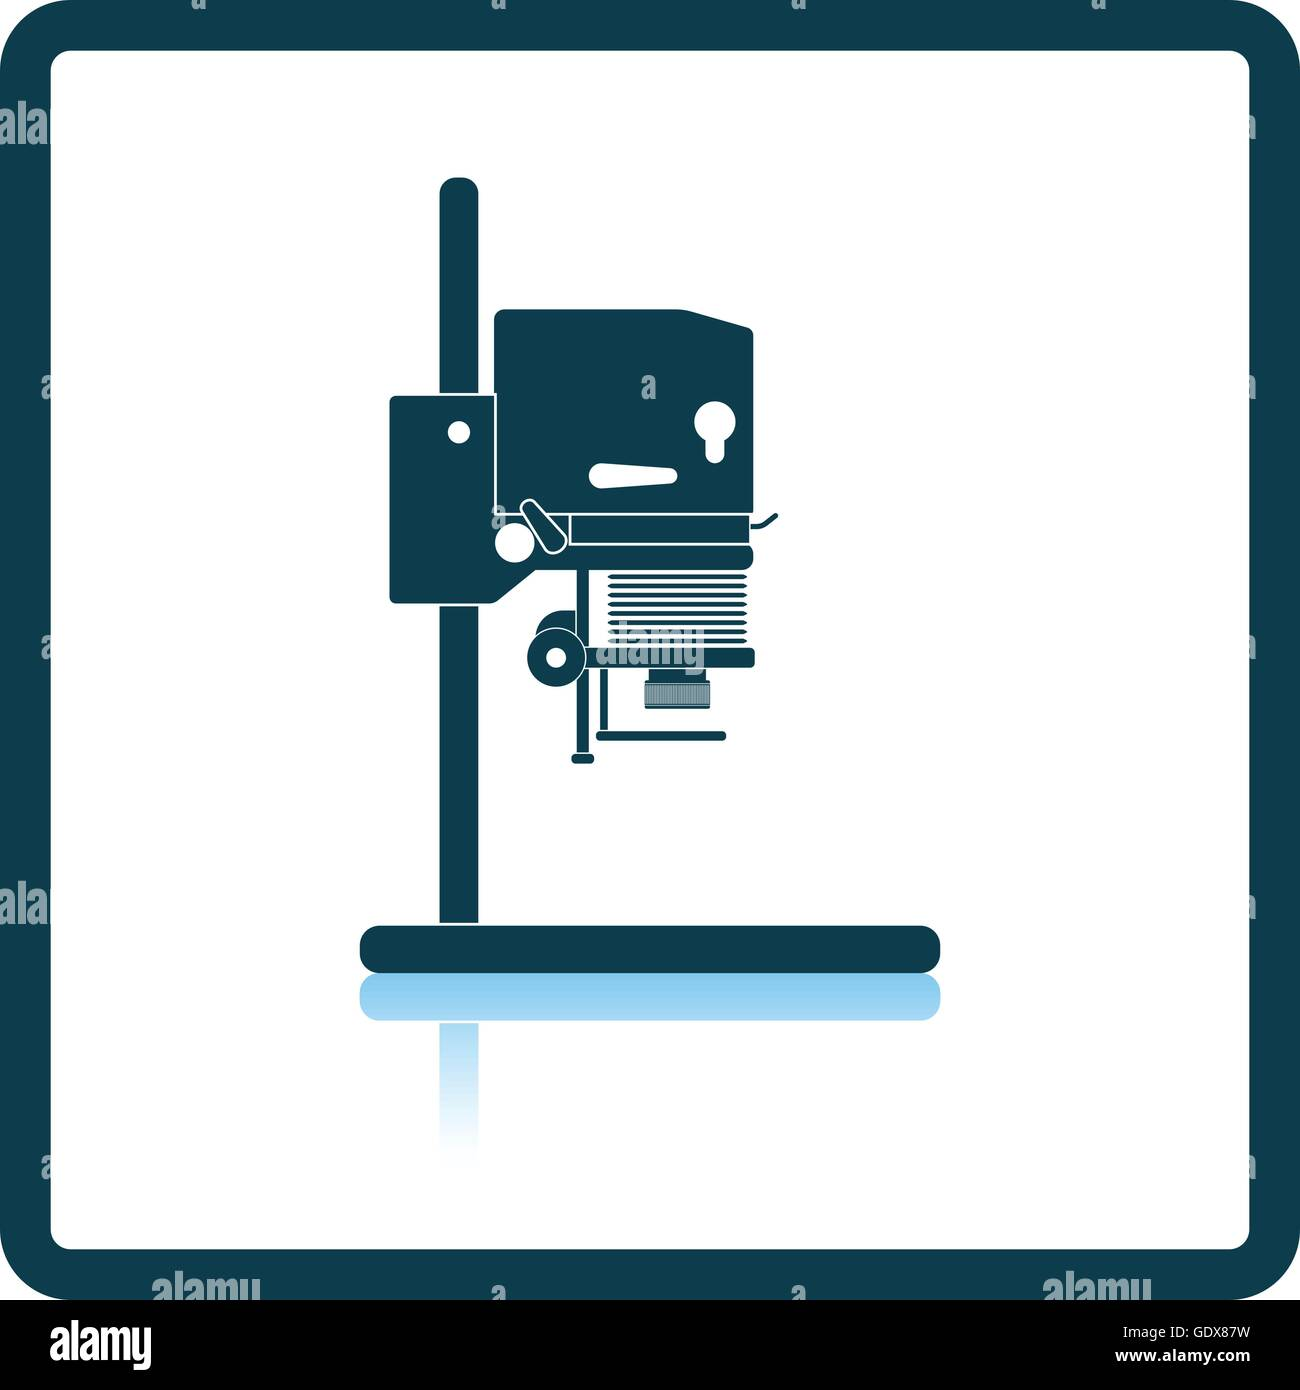 Photo Enlarger Stock Photos Images Alamy Gdx Intercom Wiring Diagram Icon Of Shadow Reflection Design Vector Illustration Image